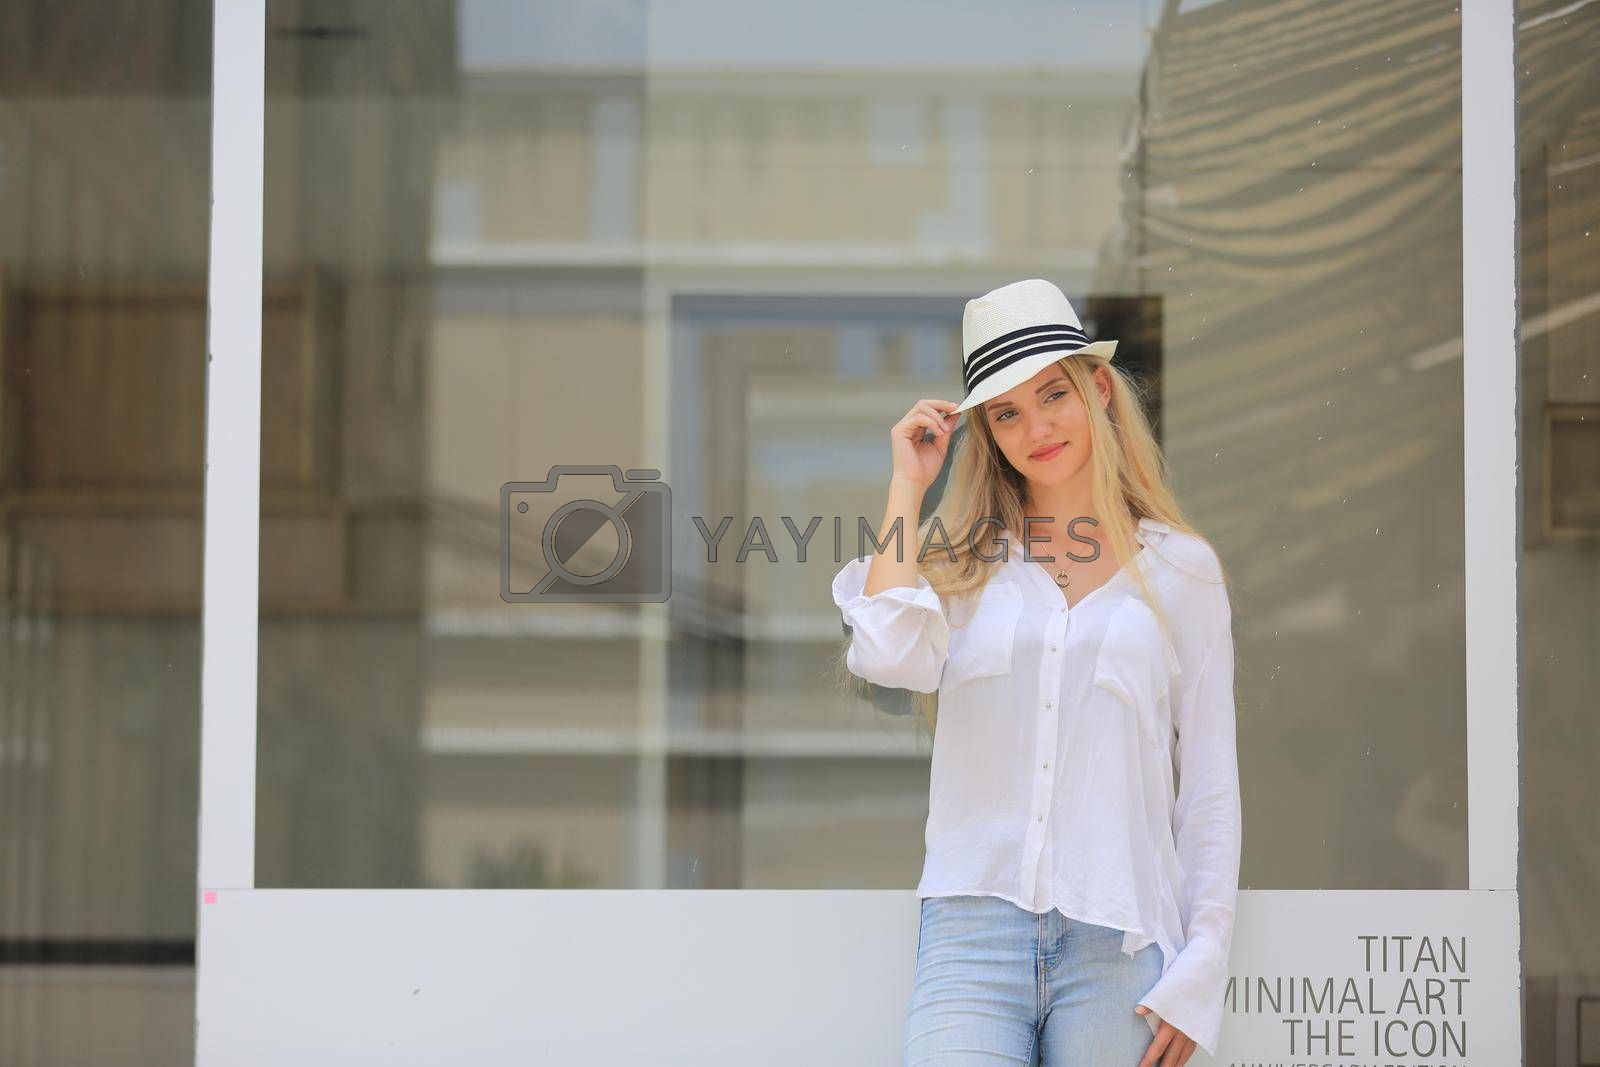 Beautiful blonde hair girl with white hat standing against wall glass as fashion pose outdoor.